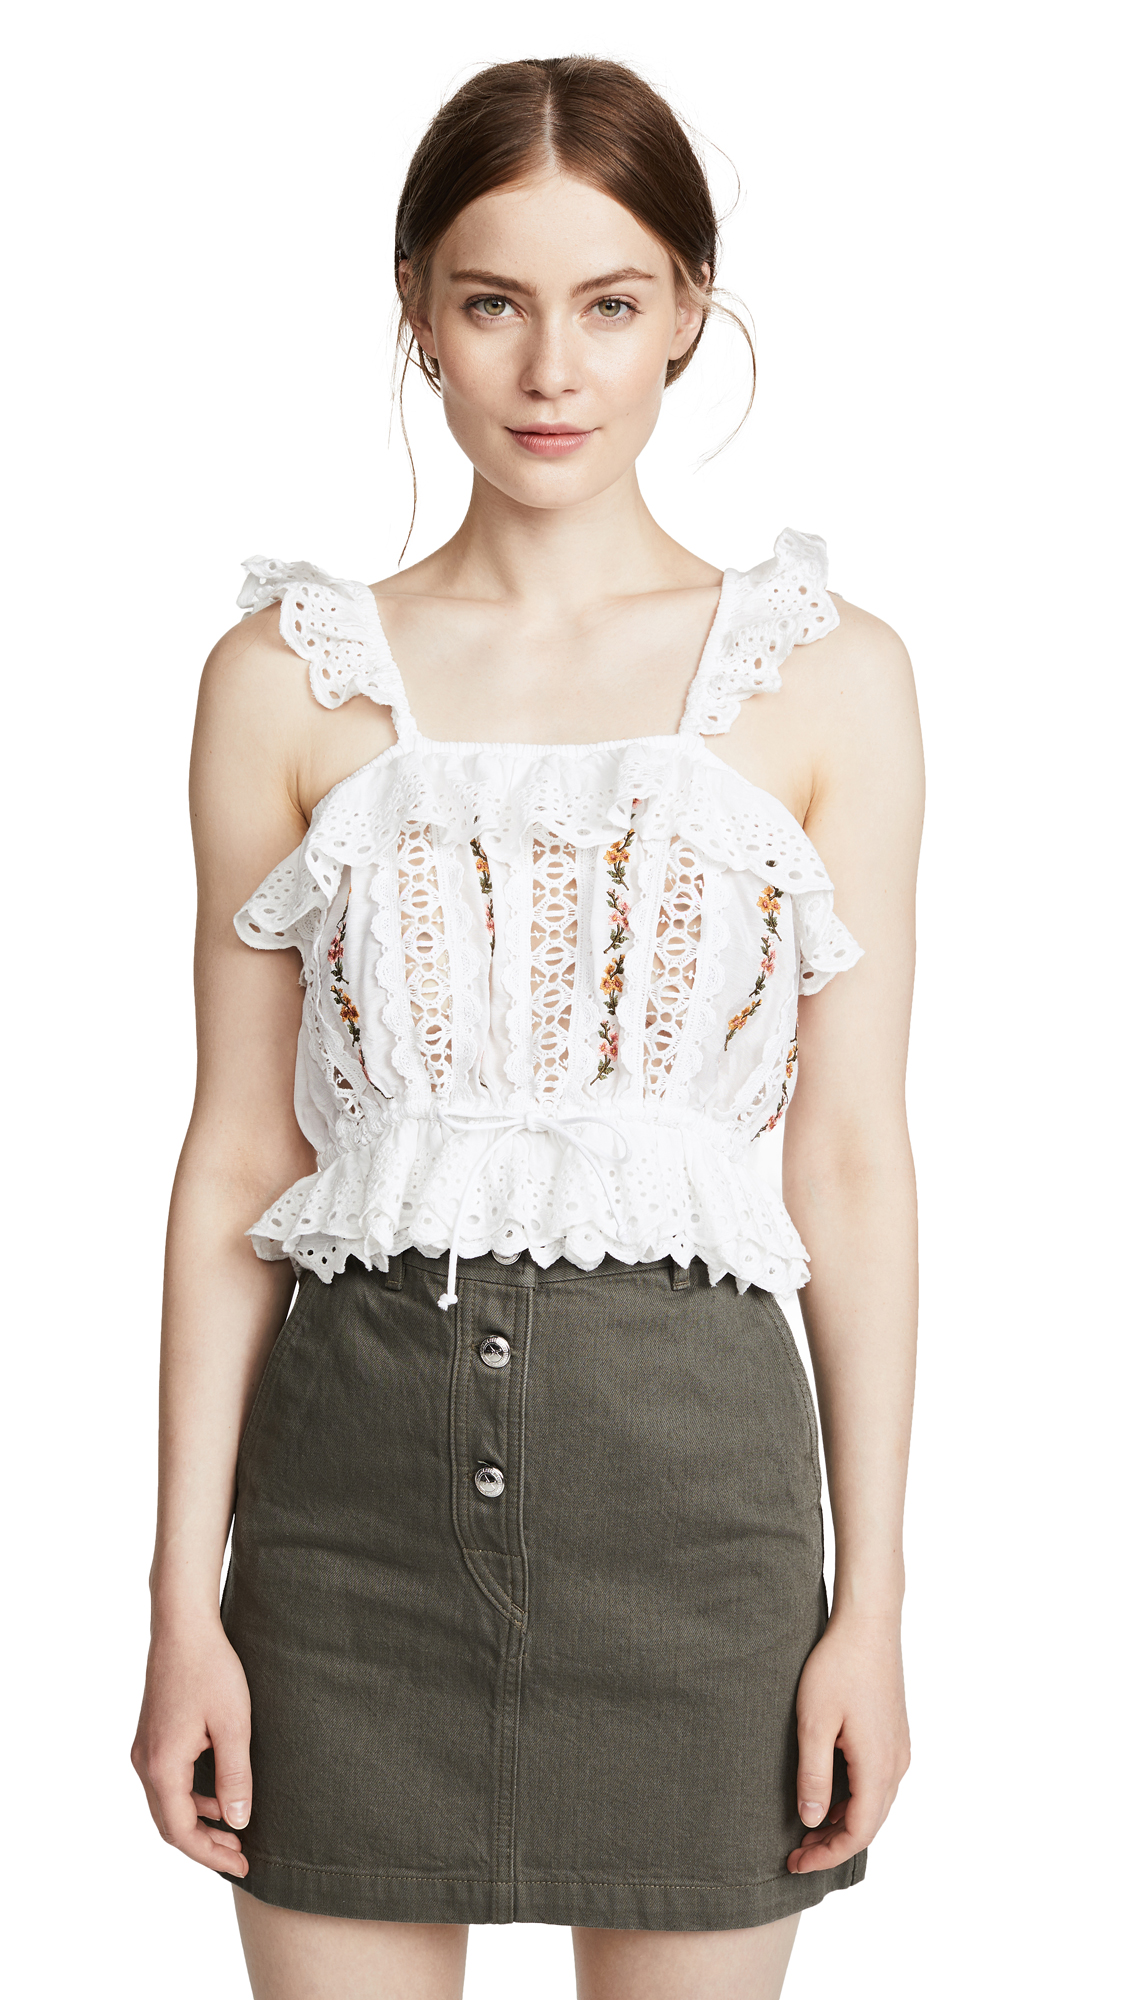 RAHICALI DREAMCATCHER EMBROIDERED TOP